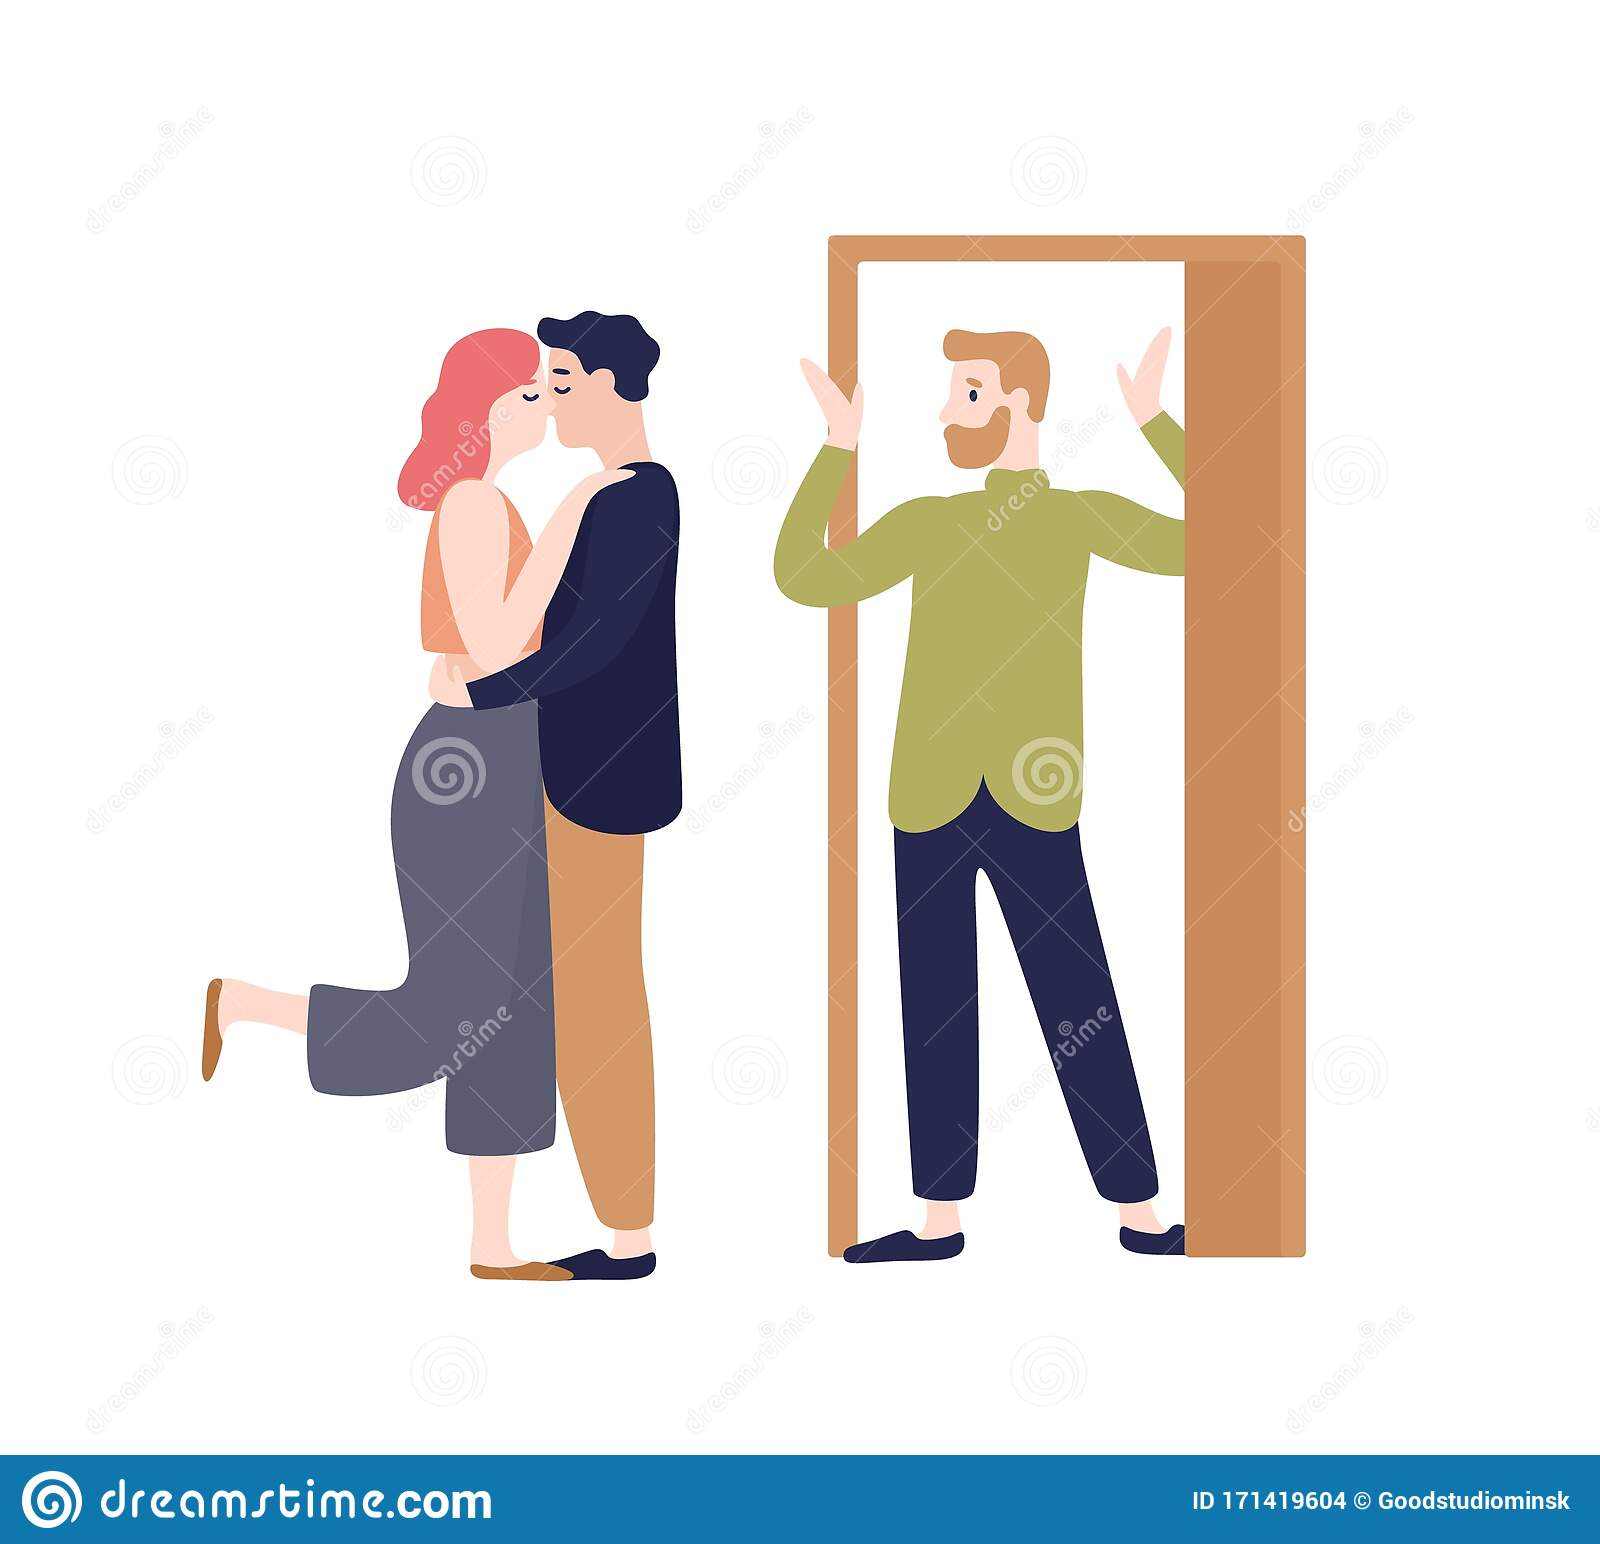 Cheating Wife Stock Illustrations – 211 Cheating Wife Stock Illustrations,  Vectors & Clipart - Dreamstime